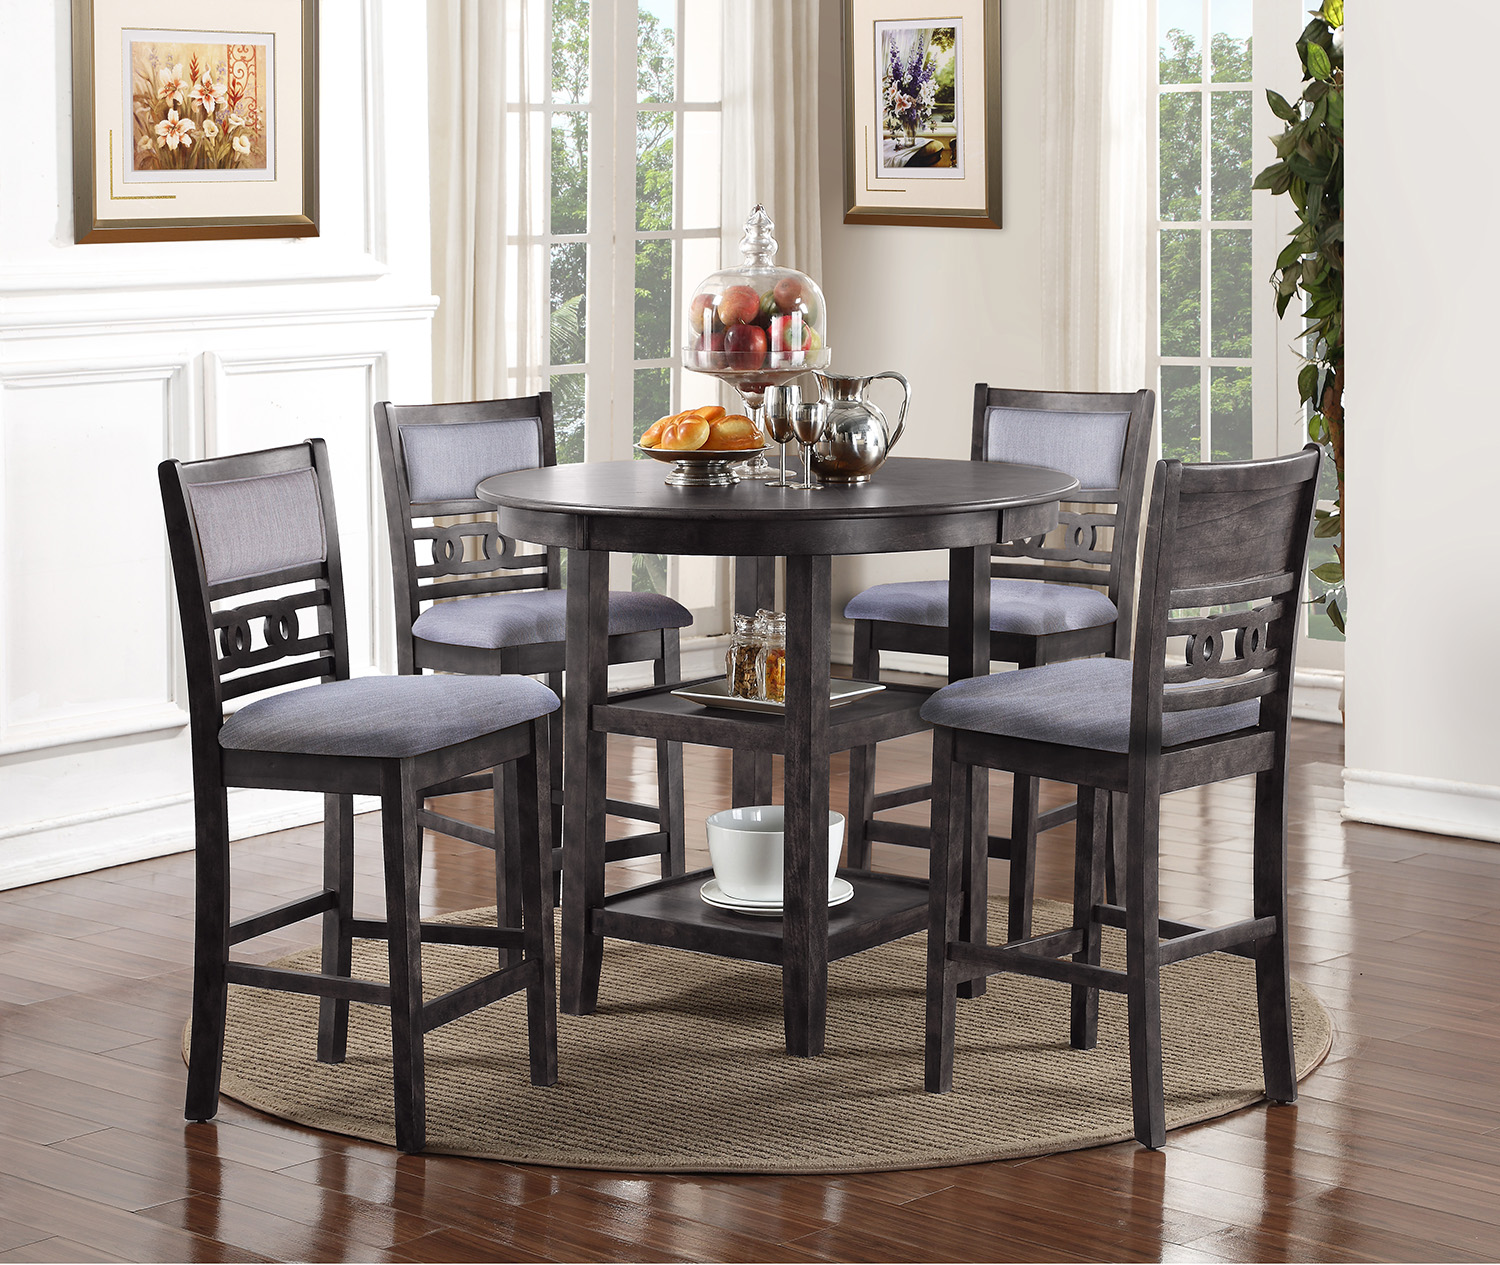 Gia Gray Counter Height Dining Table and Four Chairs  / $14.99 A Week